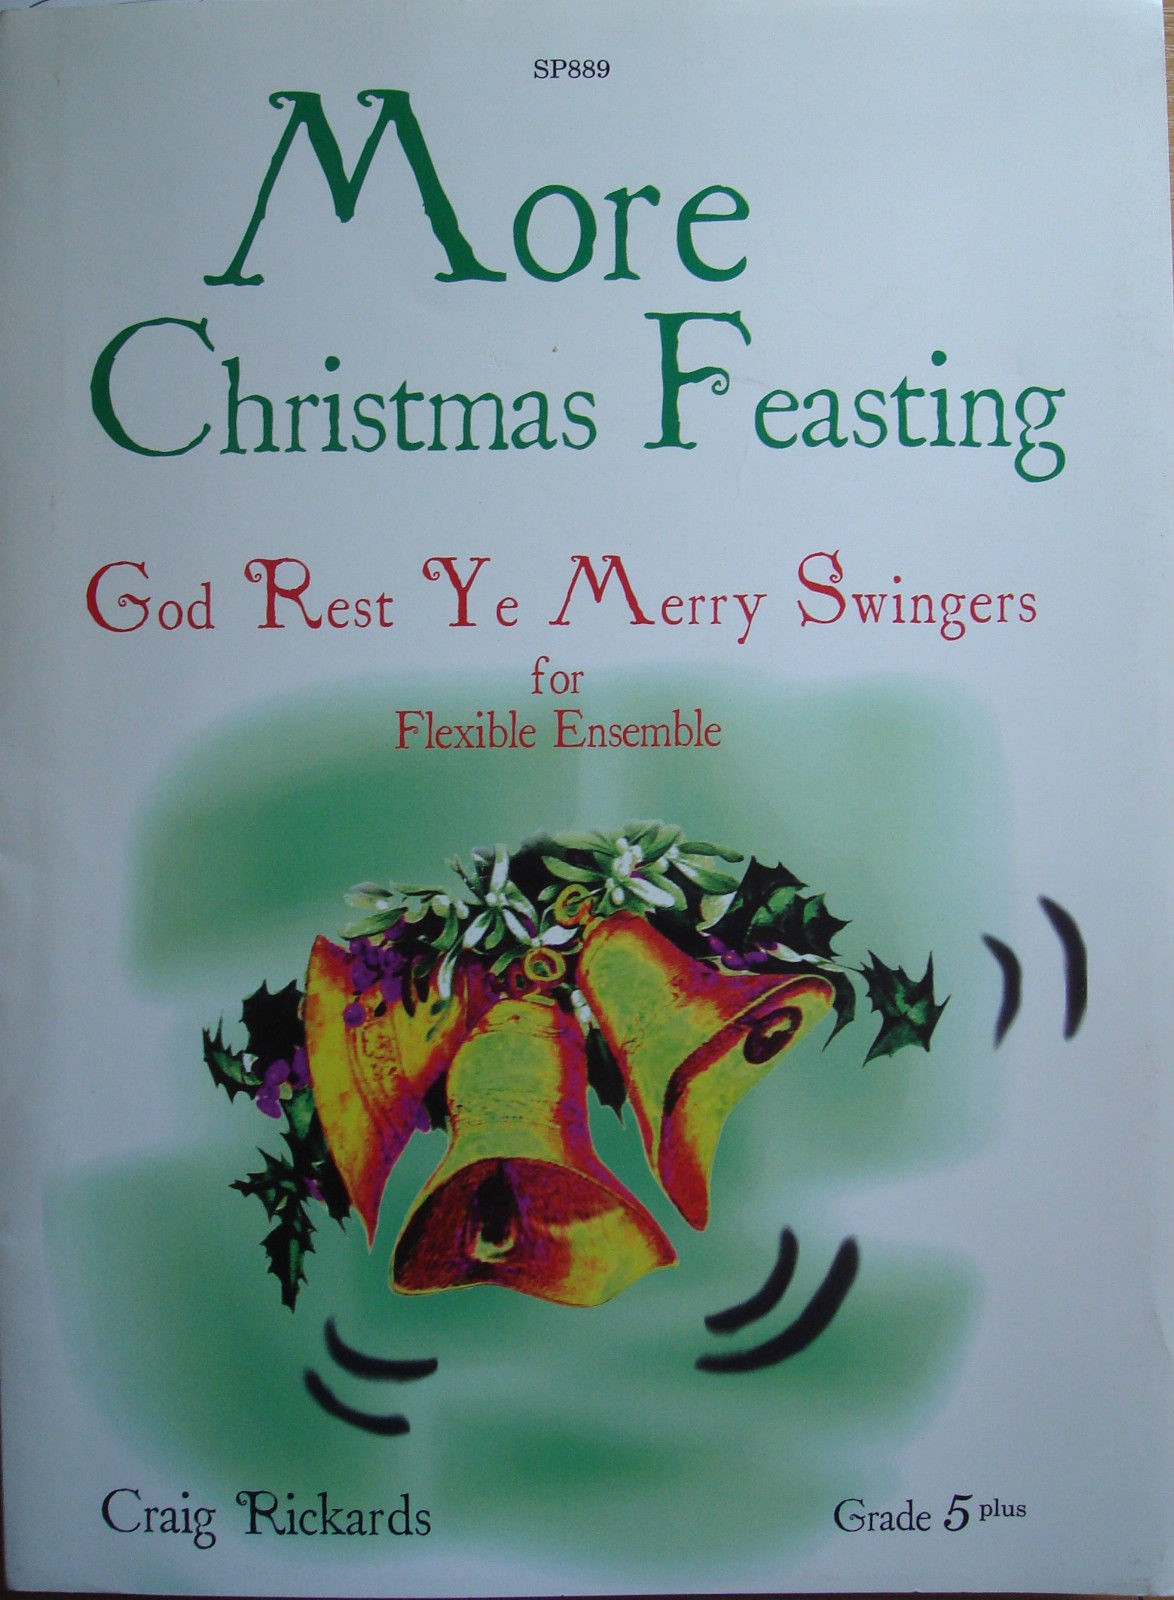 More Christmas Feasting God Rest Ye Merry Swingers Score & Parts Rickards B39